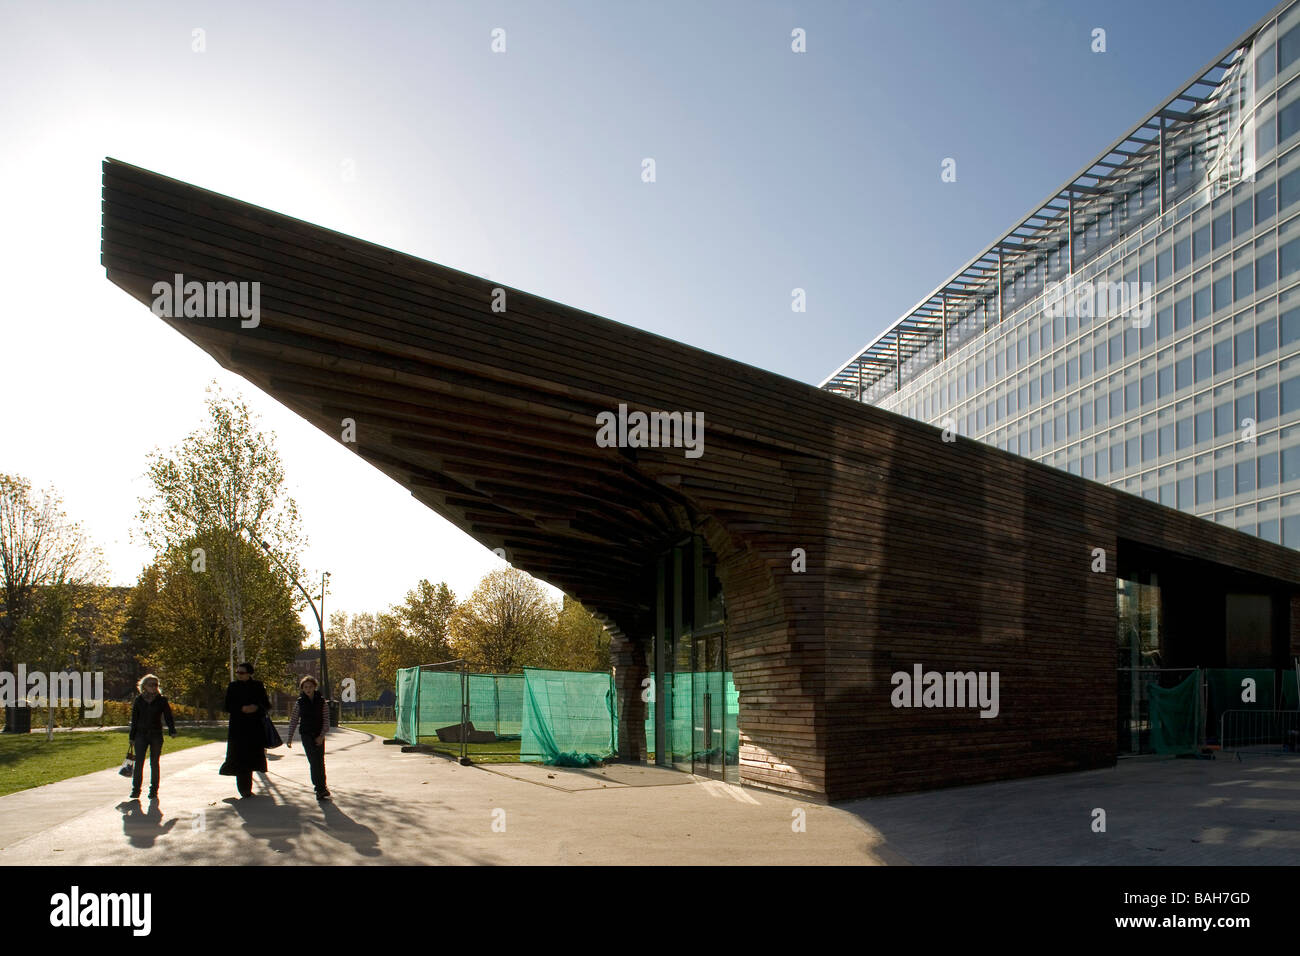 POTTERS FIELDS KIOSK, DSDHA ARCHITECTS, LONDON, UNITED KINGDOM - Stock Image